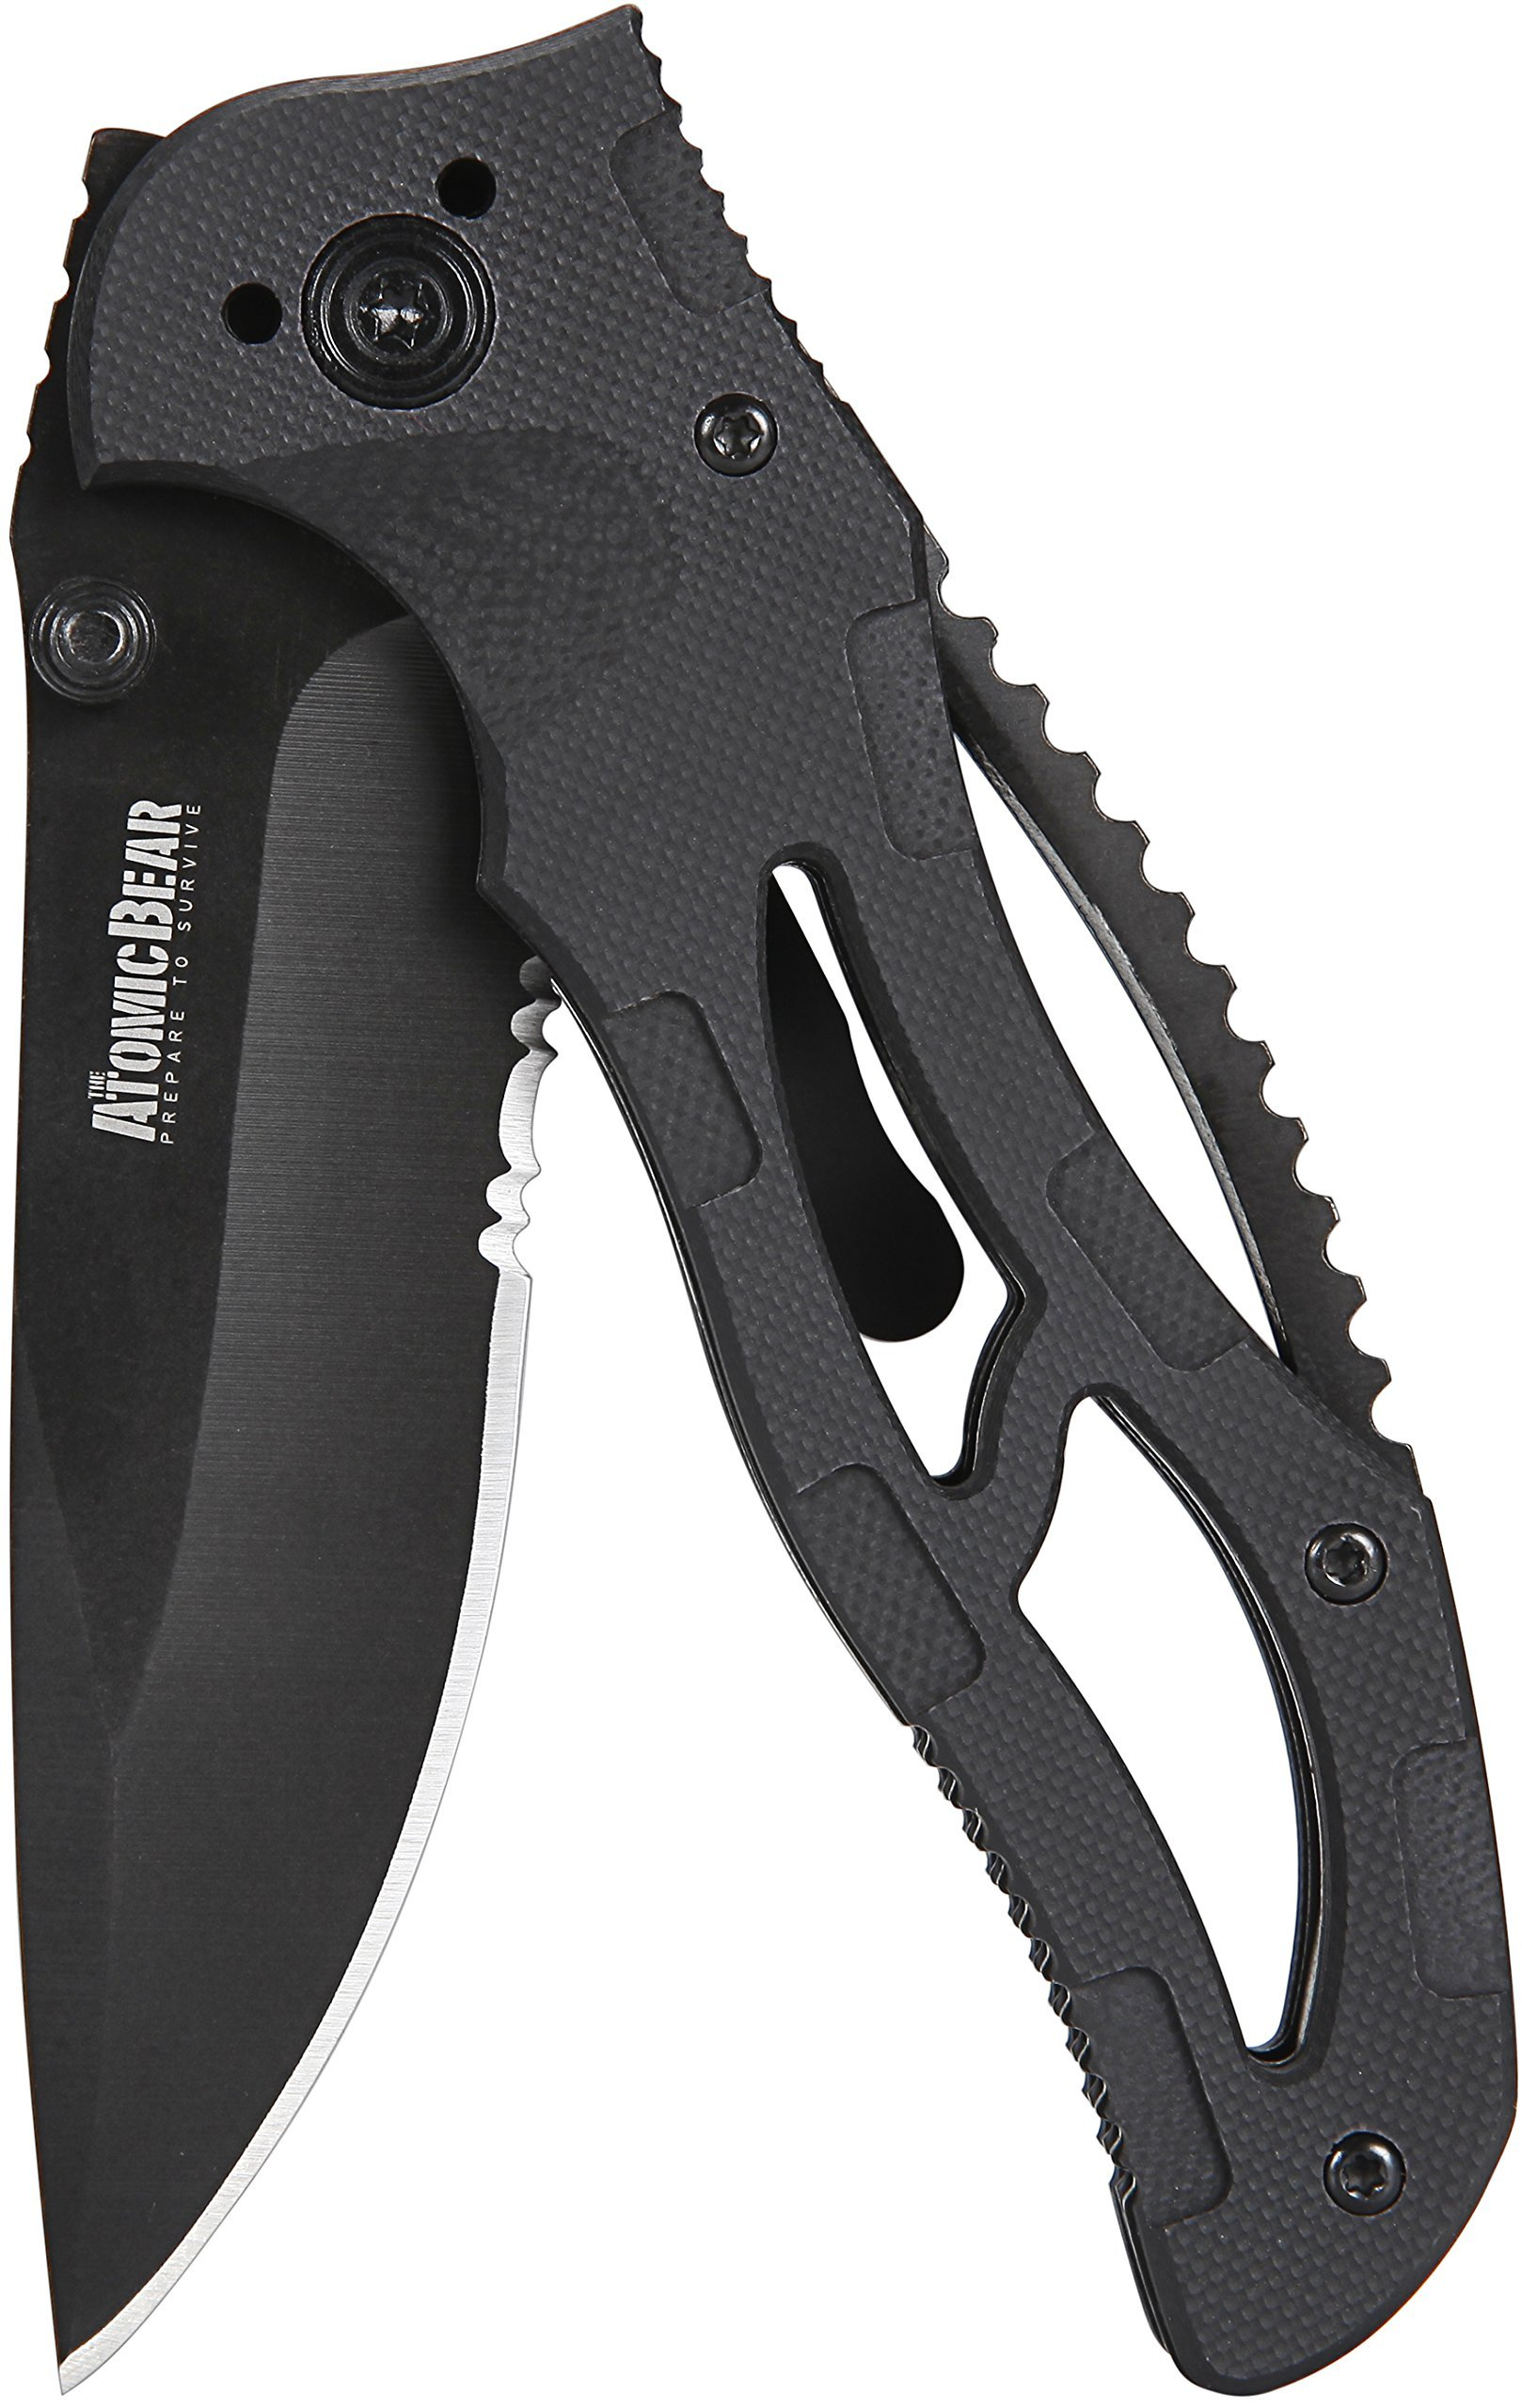 The Atomic Bear Folding Knife with Half Serrated Stainless Steel Blade and G10 Handle Perfect for Rescue, Self Defense, Hunting, Survival, Fishing, Hiking, Camping, Climbing, Work by The Atomic Bear